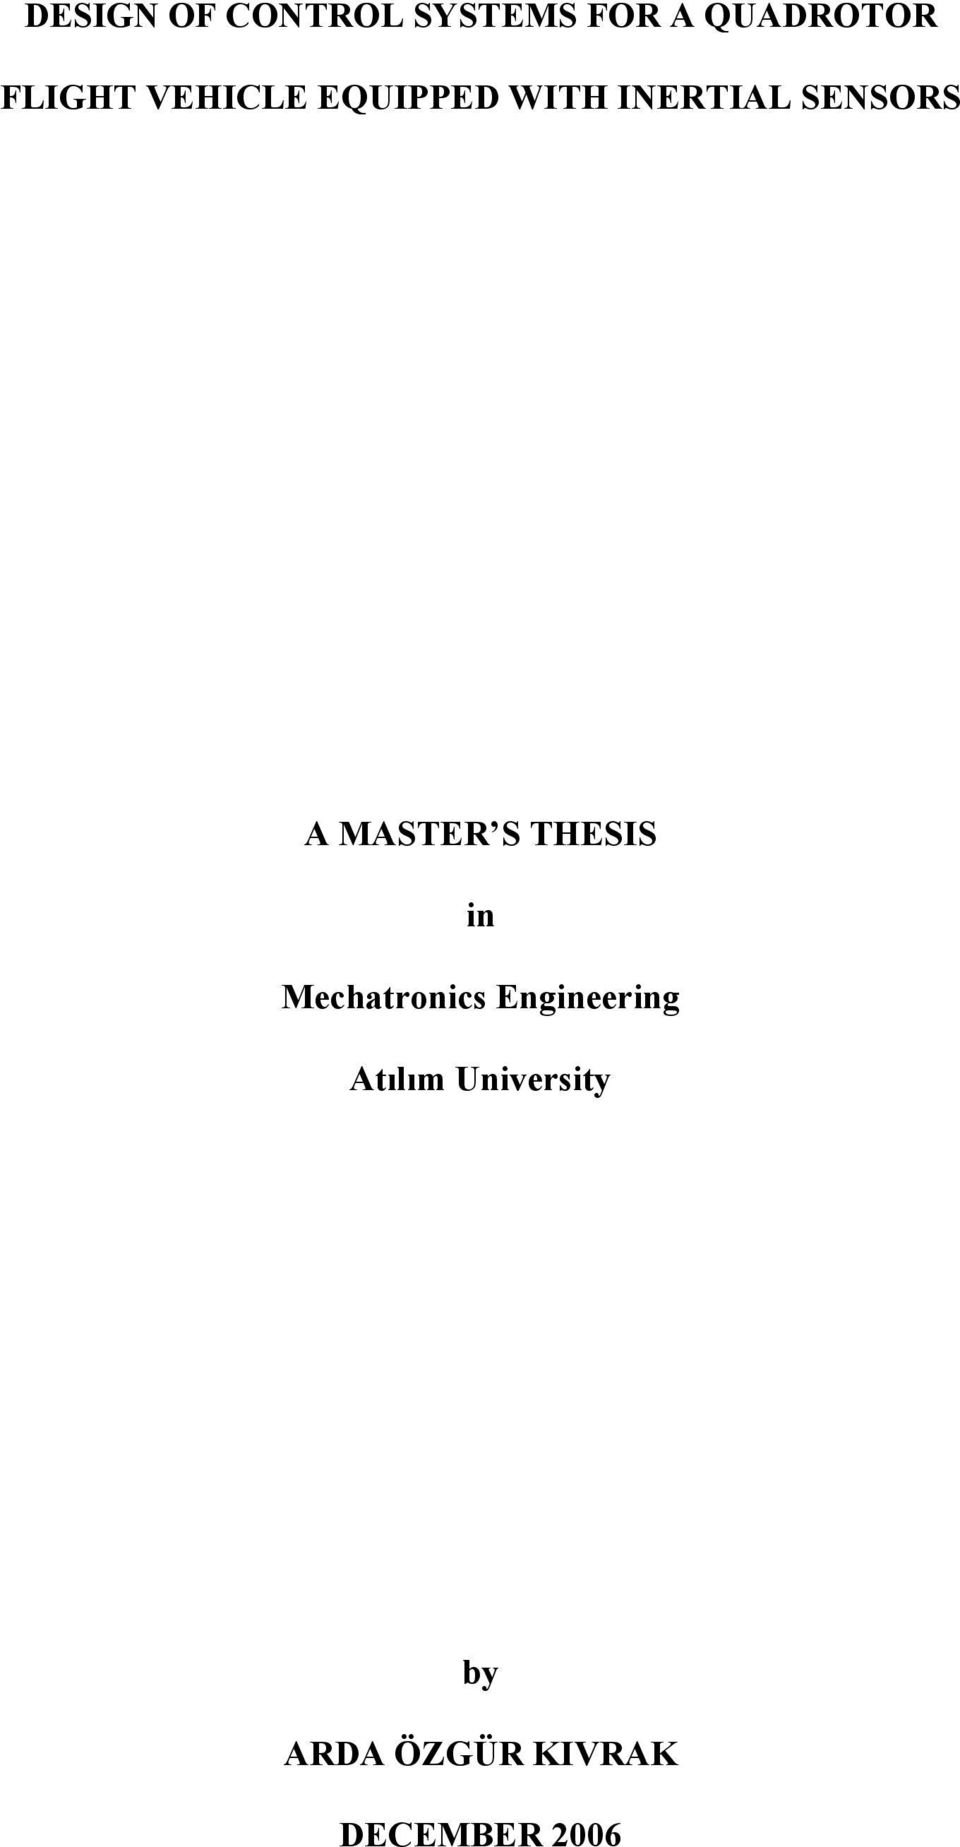 thesis mechatronics engineering Mechatronics engineering education martin grimheden doctoral thesis stockholm, sweden 2006.